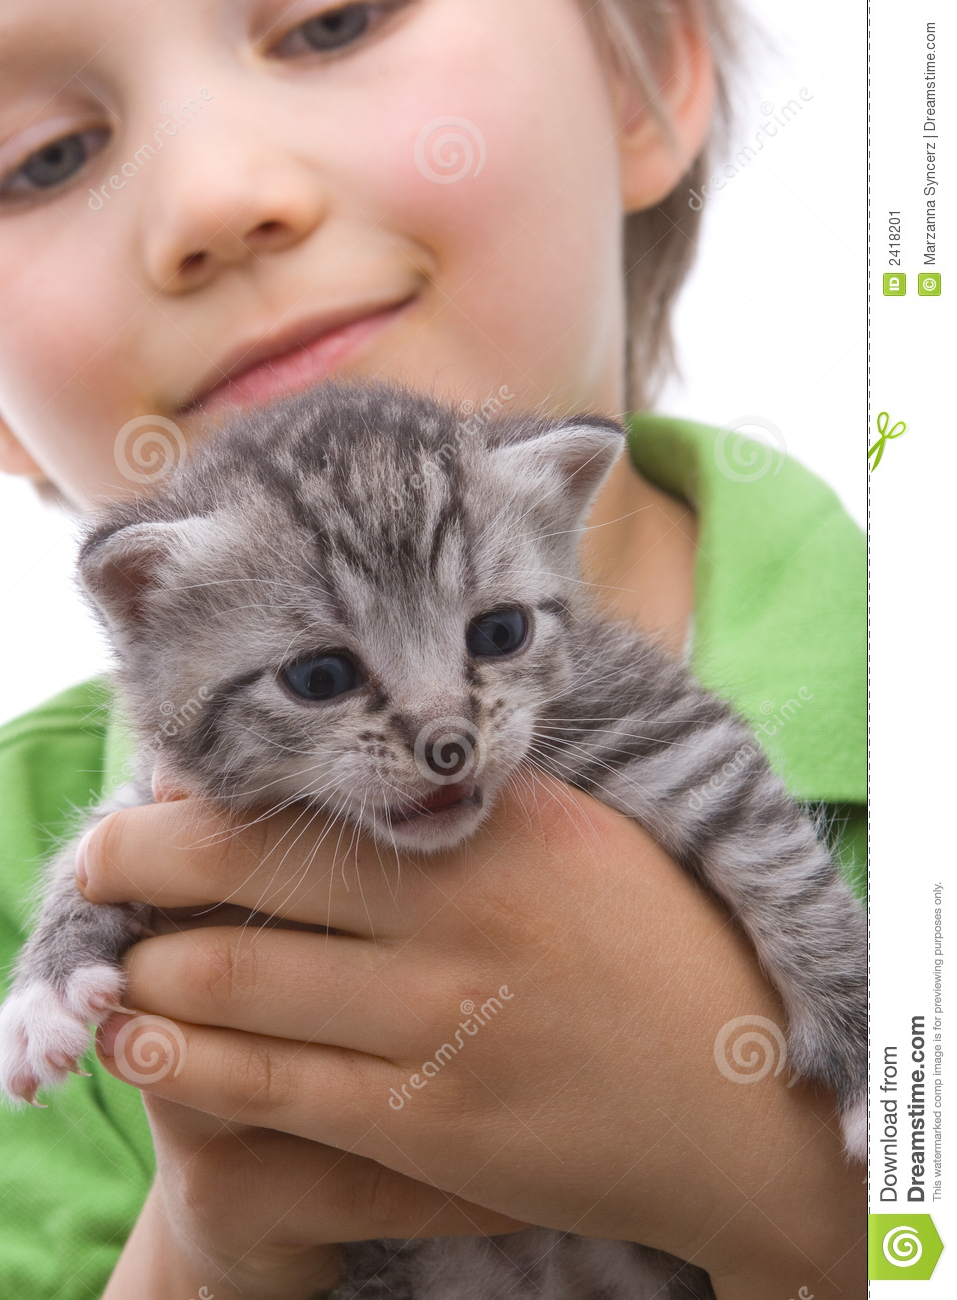 boy with cat stock image image of striped child baby 2418201